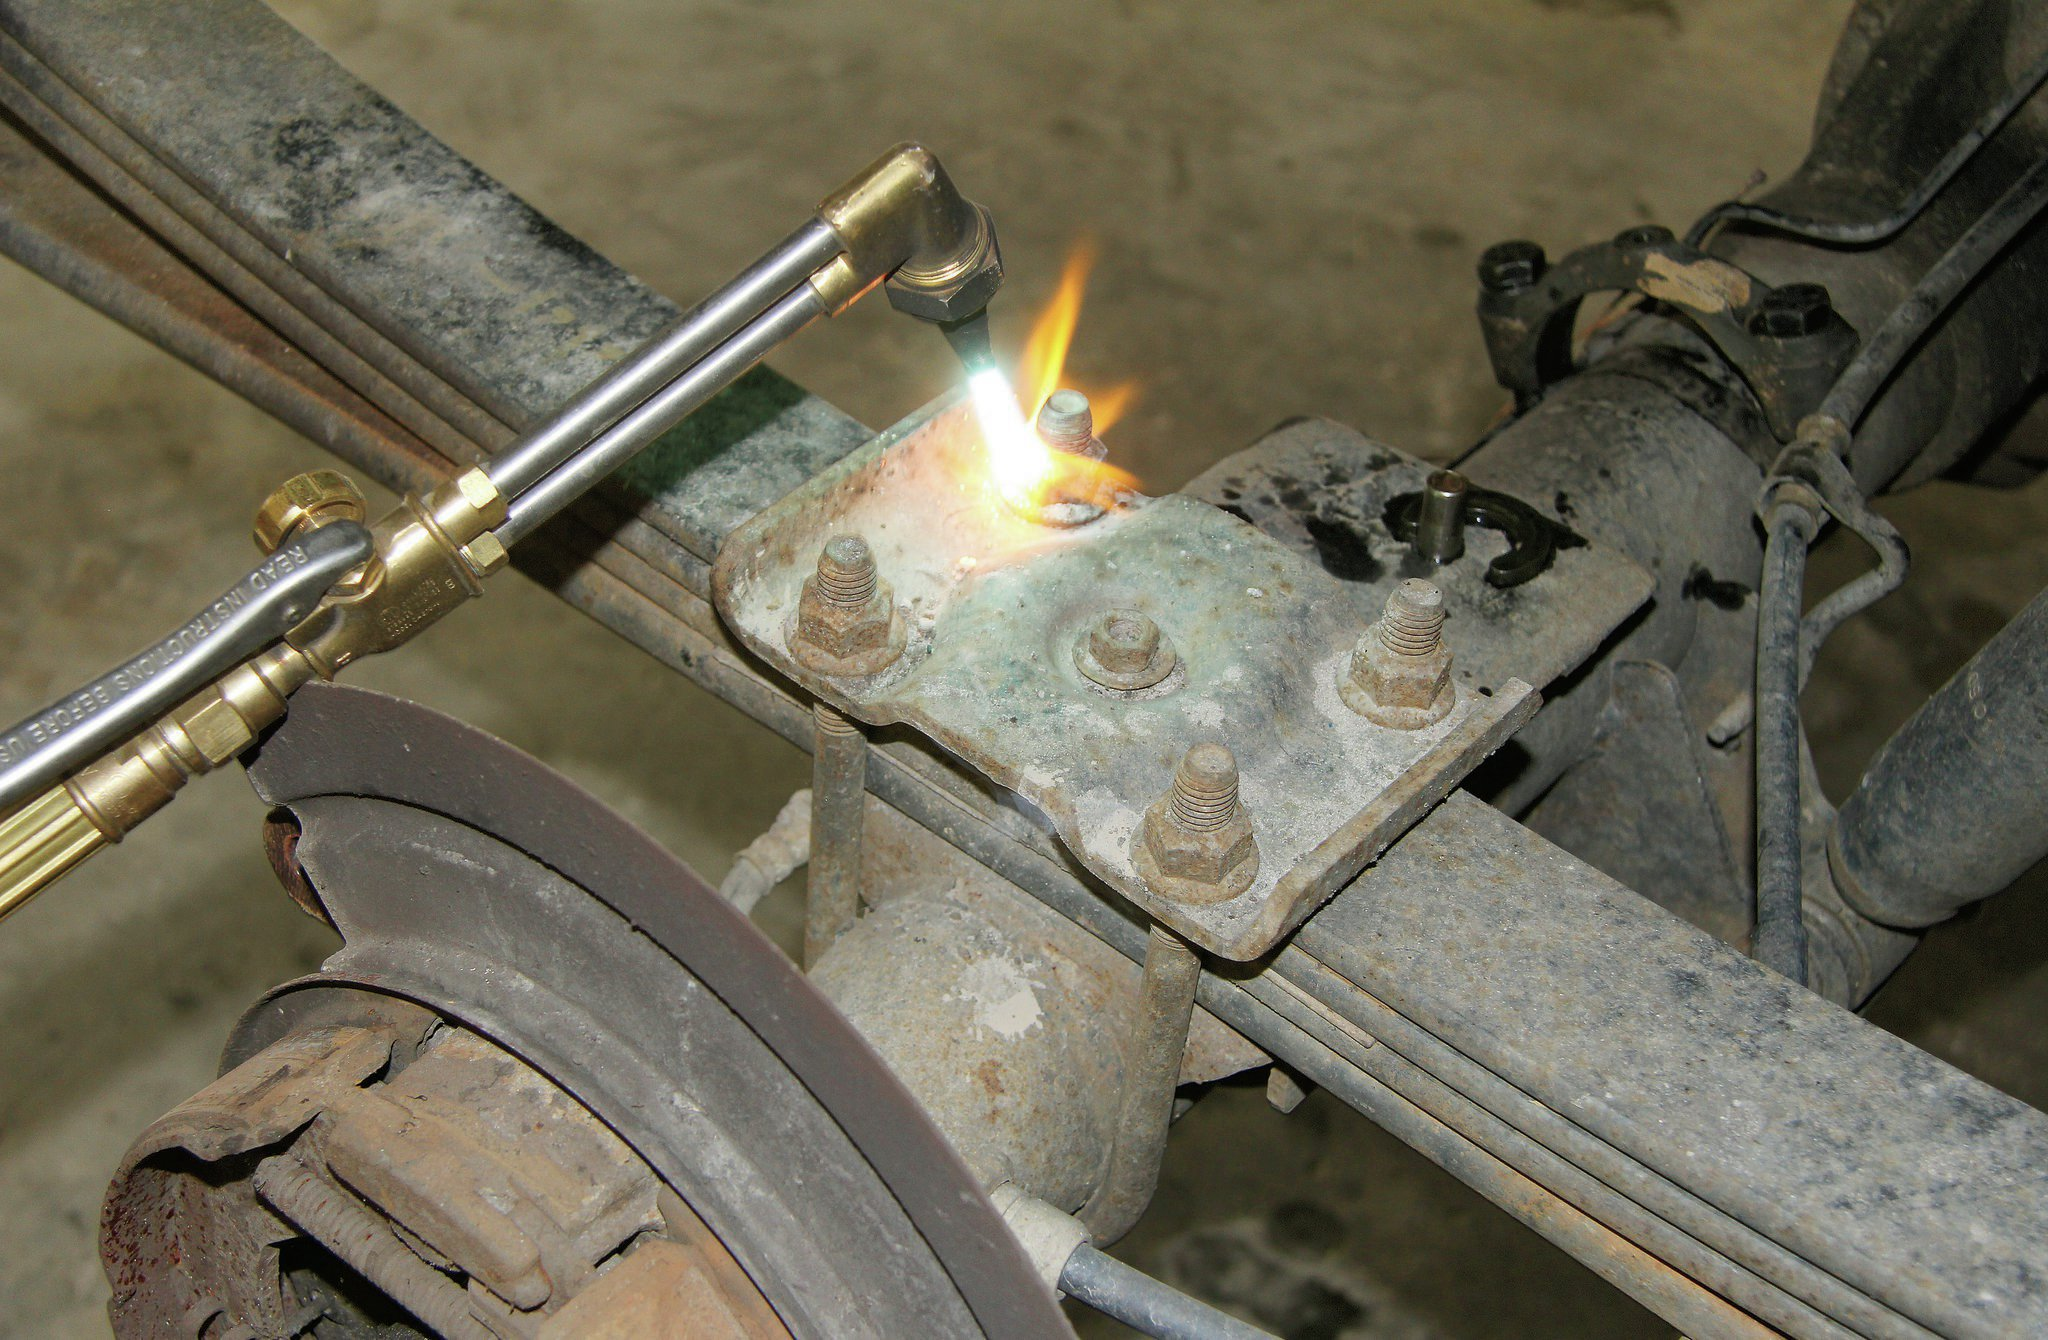 Kill it with fire! Heat is your friend when it comes to breaking free a rusty nut or seized bolt. A small butane torch will usually get the job done, but we like an oxy acetylene torch setup in case we have to cut off the offending member.